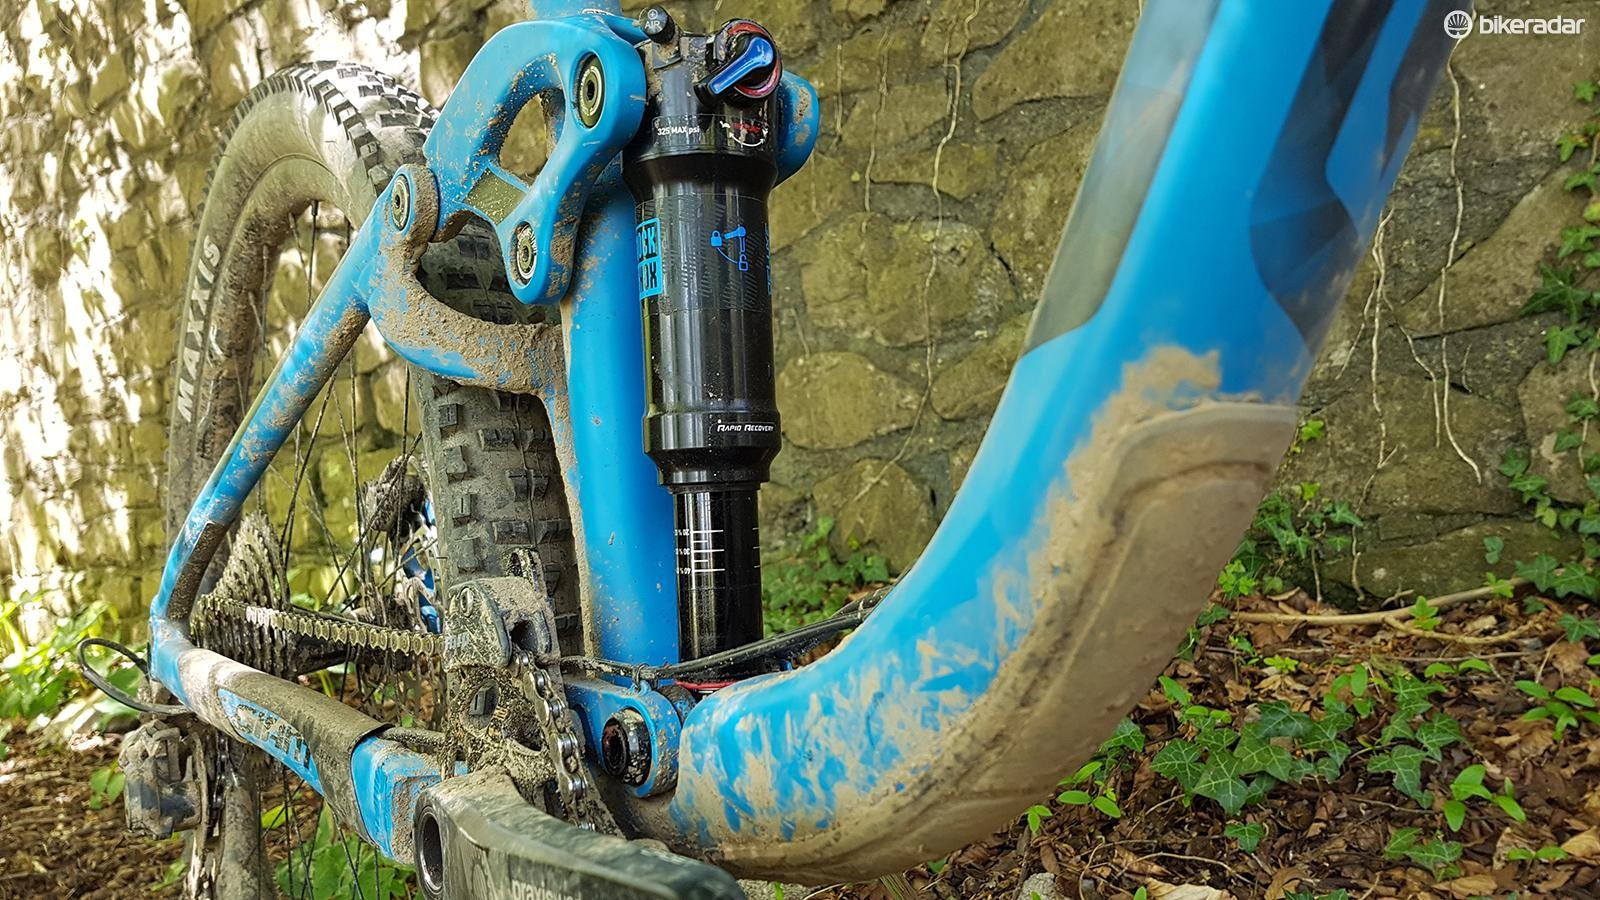 At the back, a RockShox Deluxe RT shock takes care of controlling the rear wheel's 160mm of travel